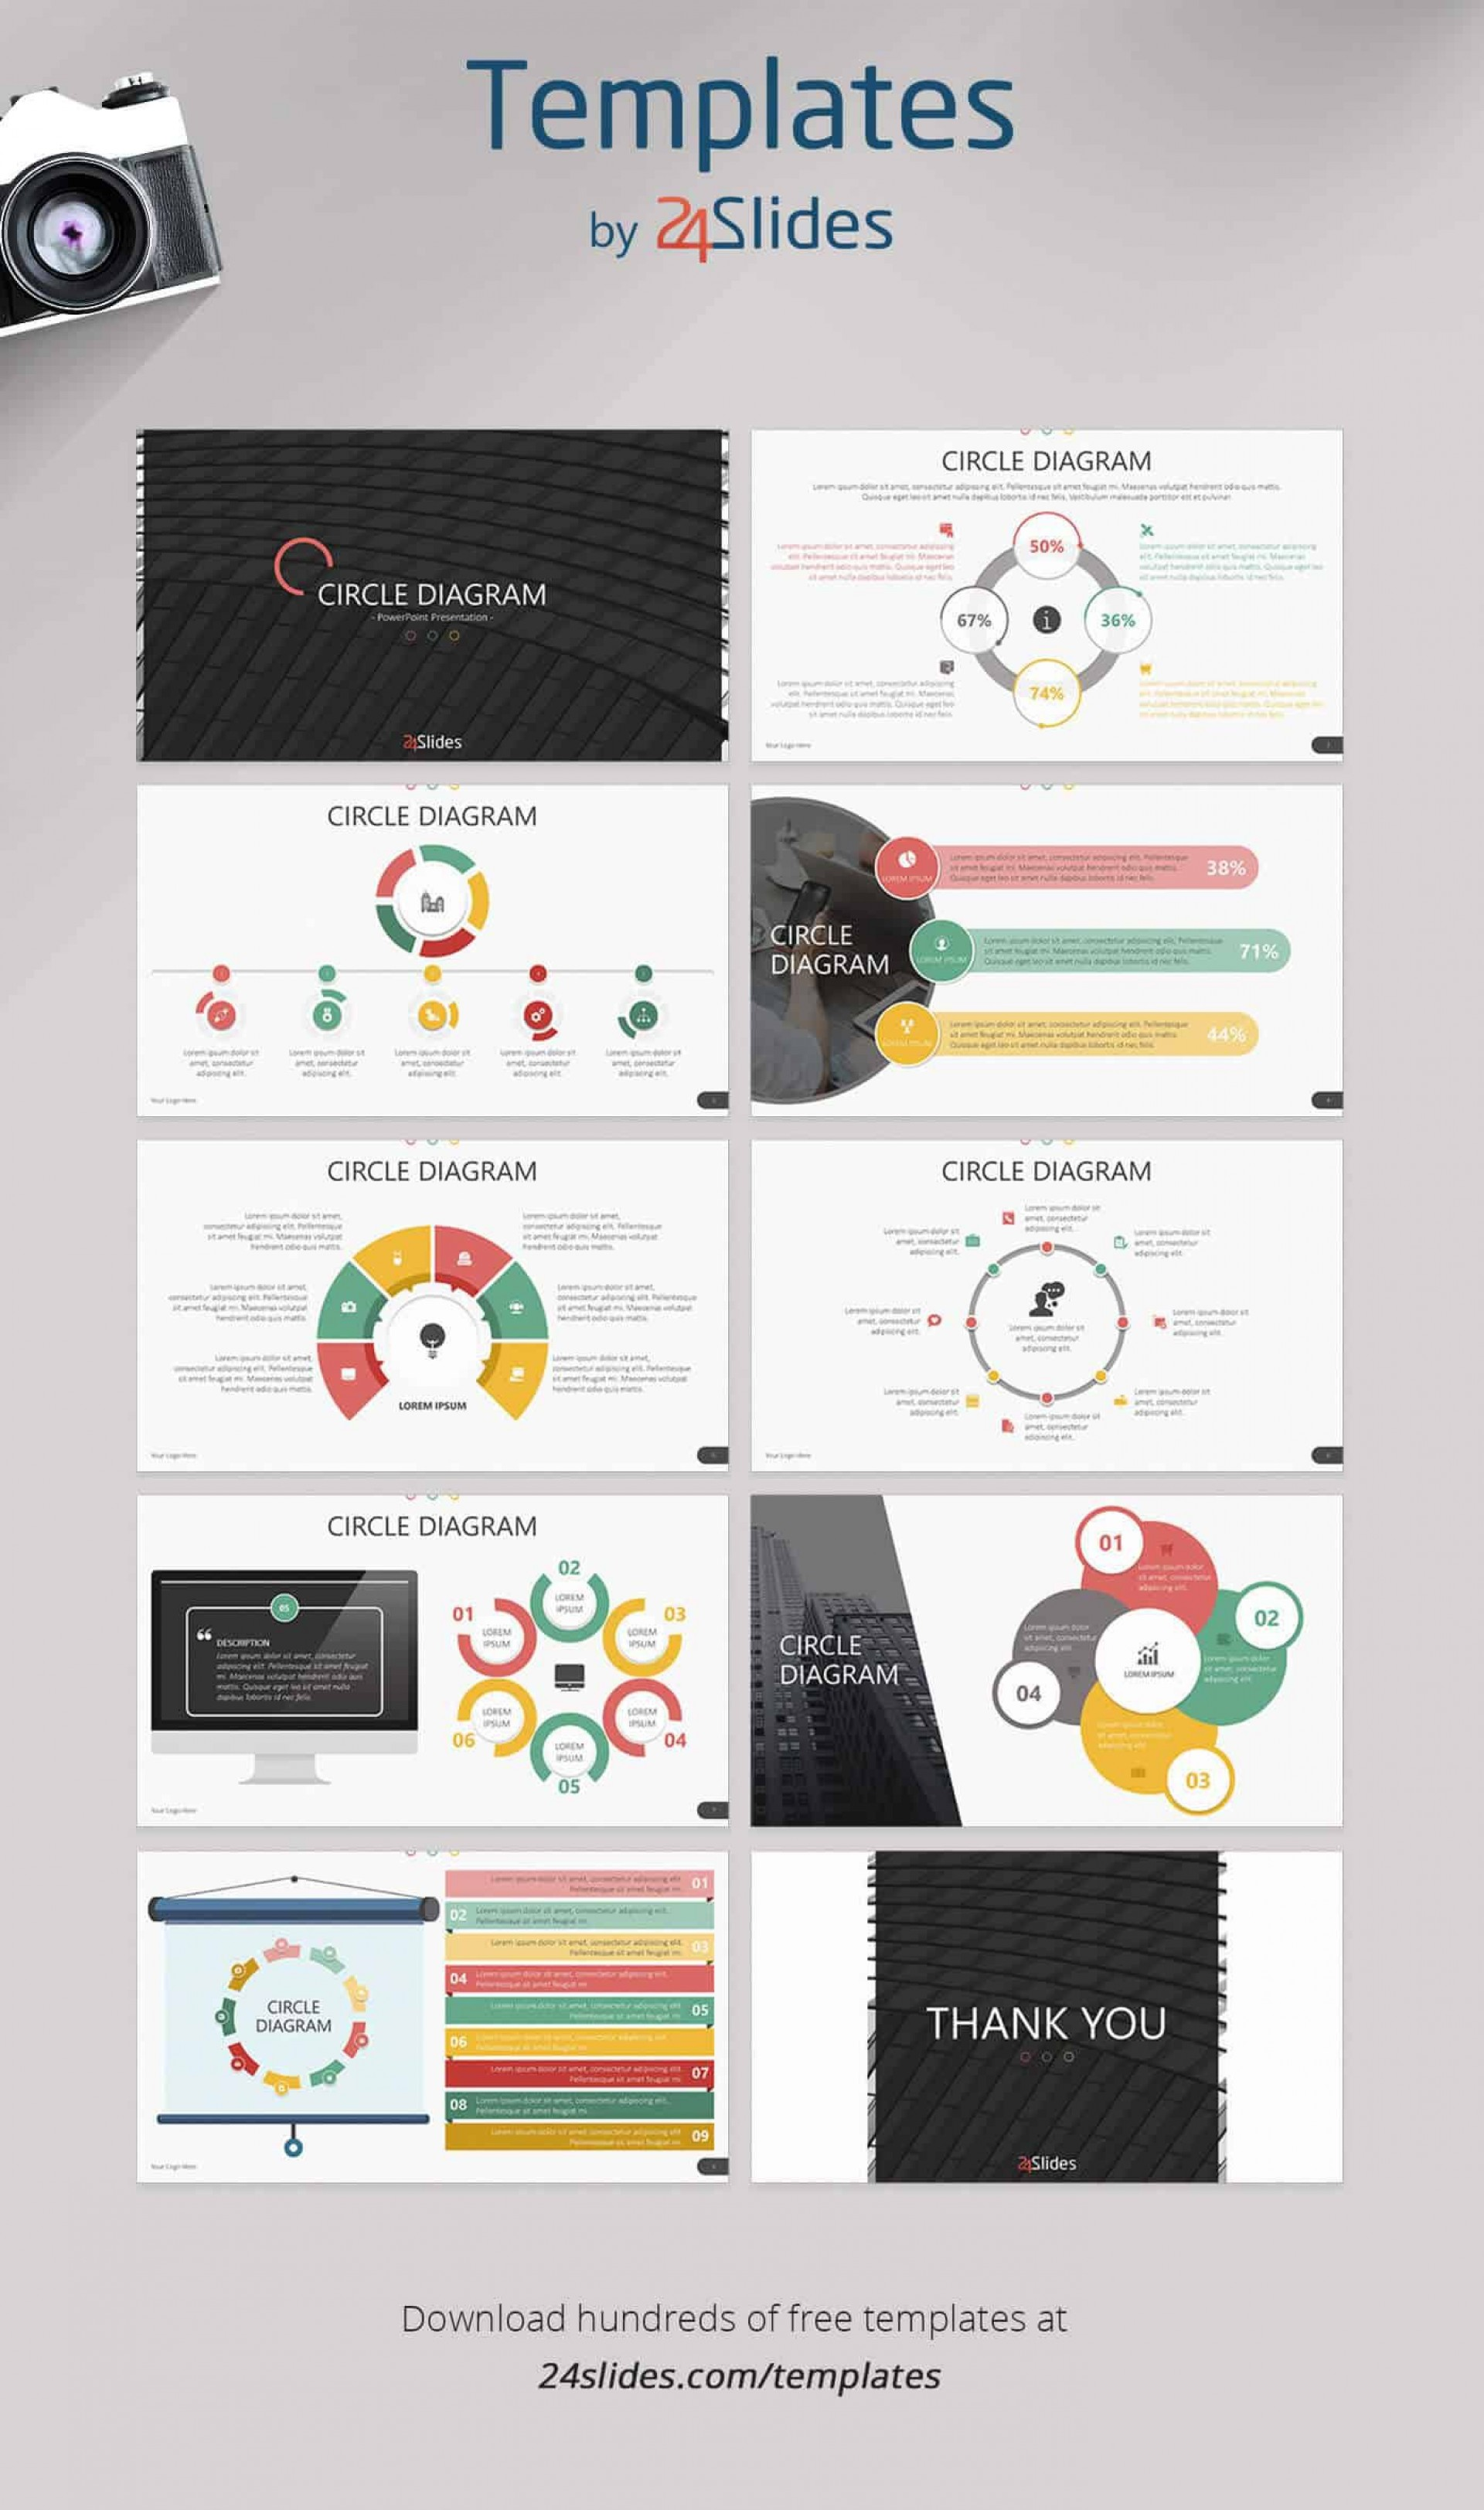 000 Breathtaking Ppt Presentation Template Free High Def  Professional Best For Corporate Download1920